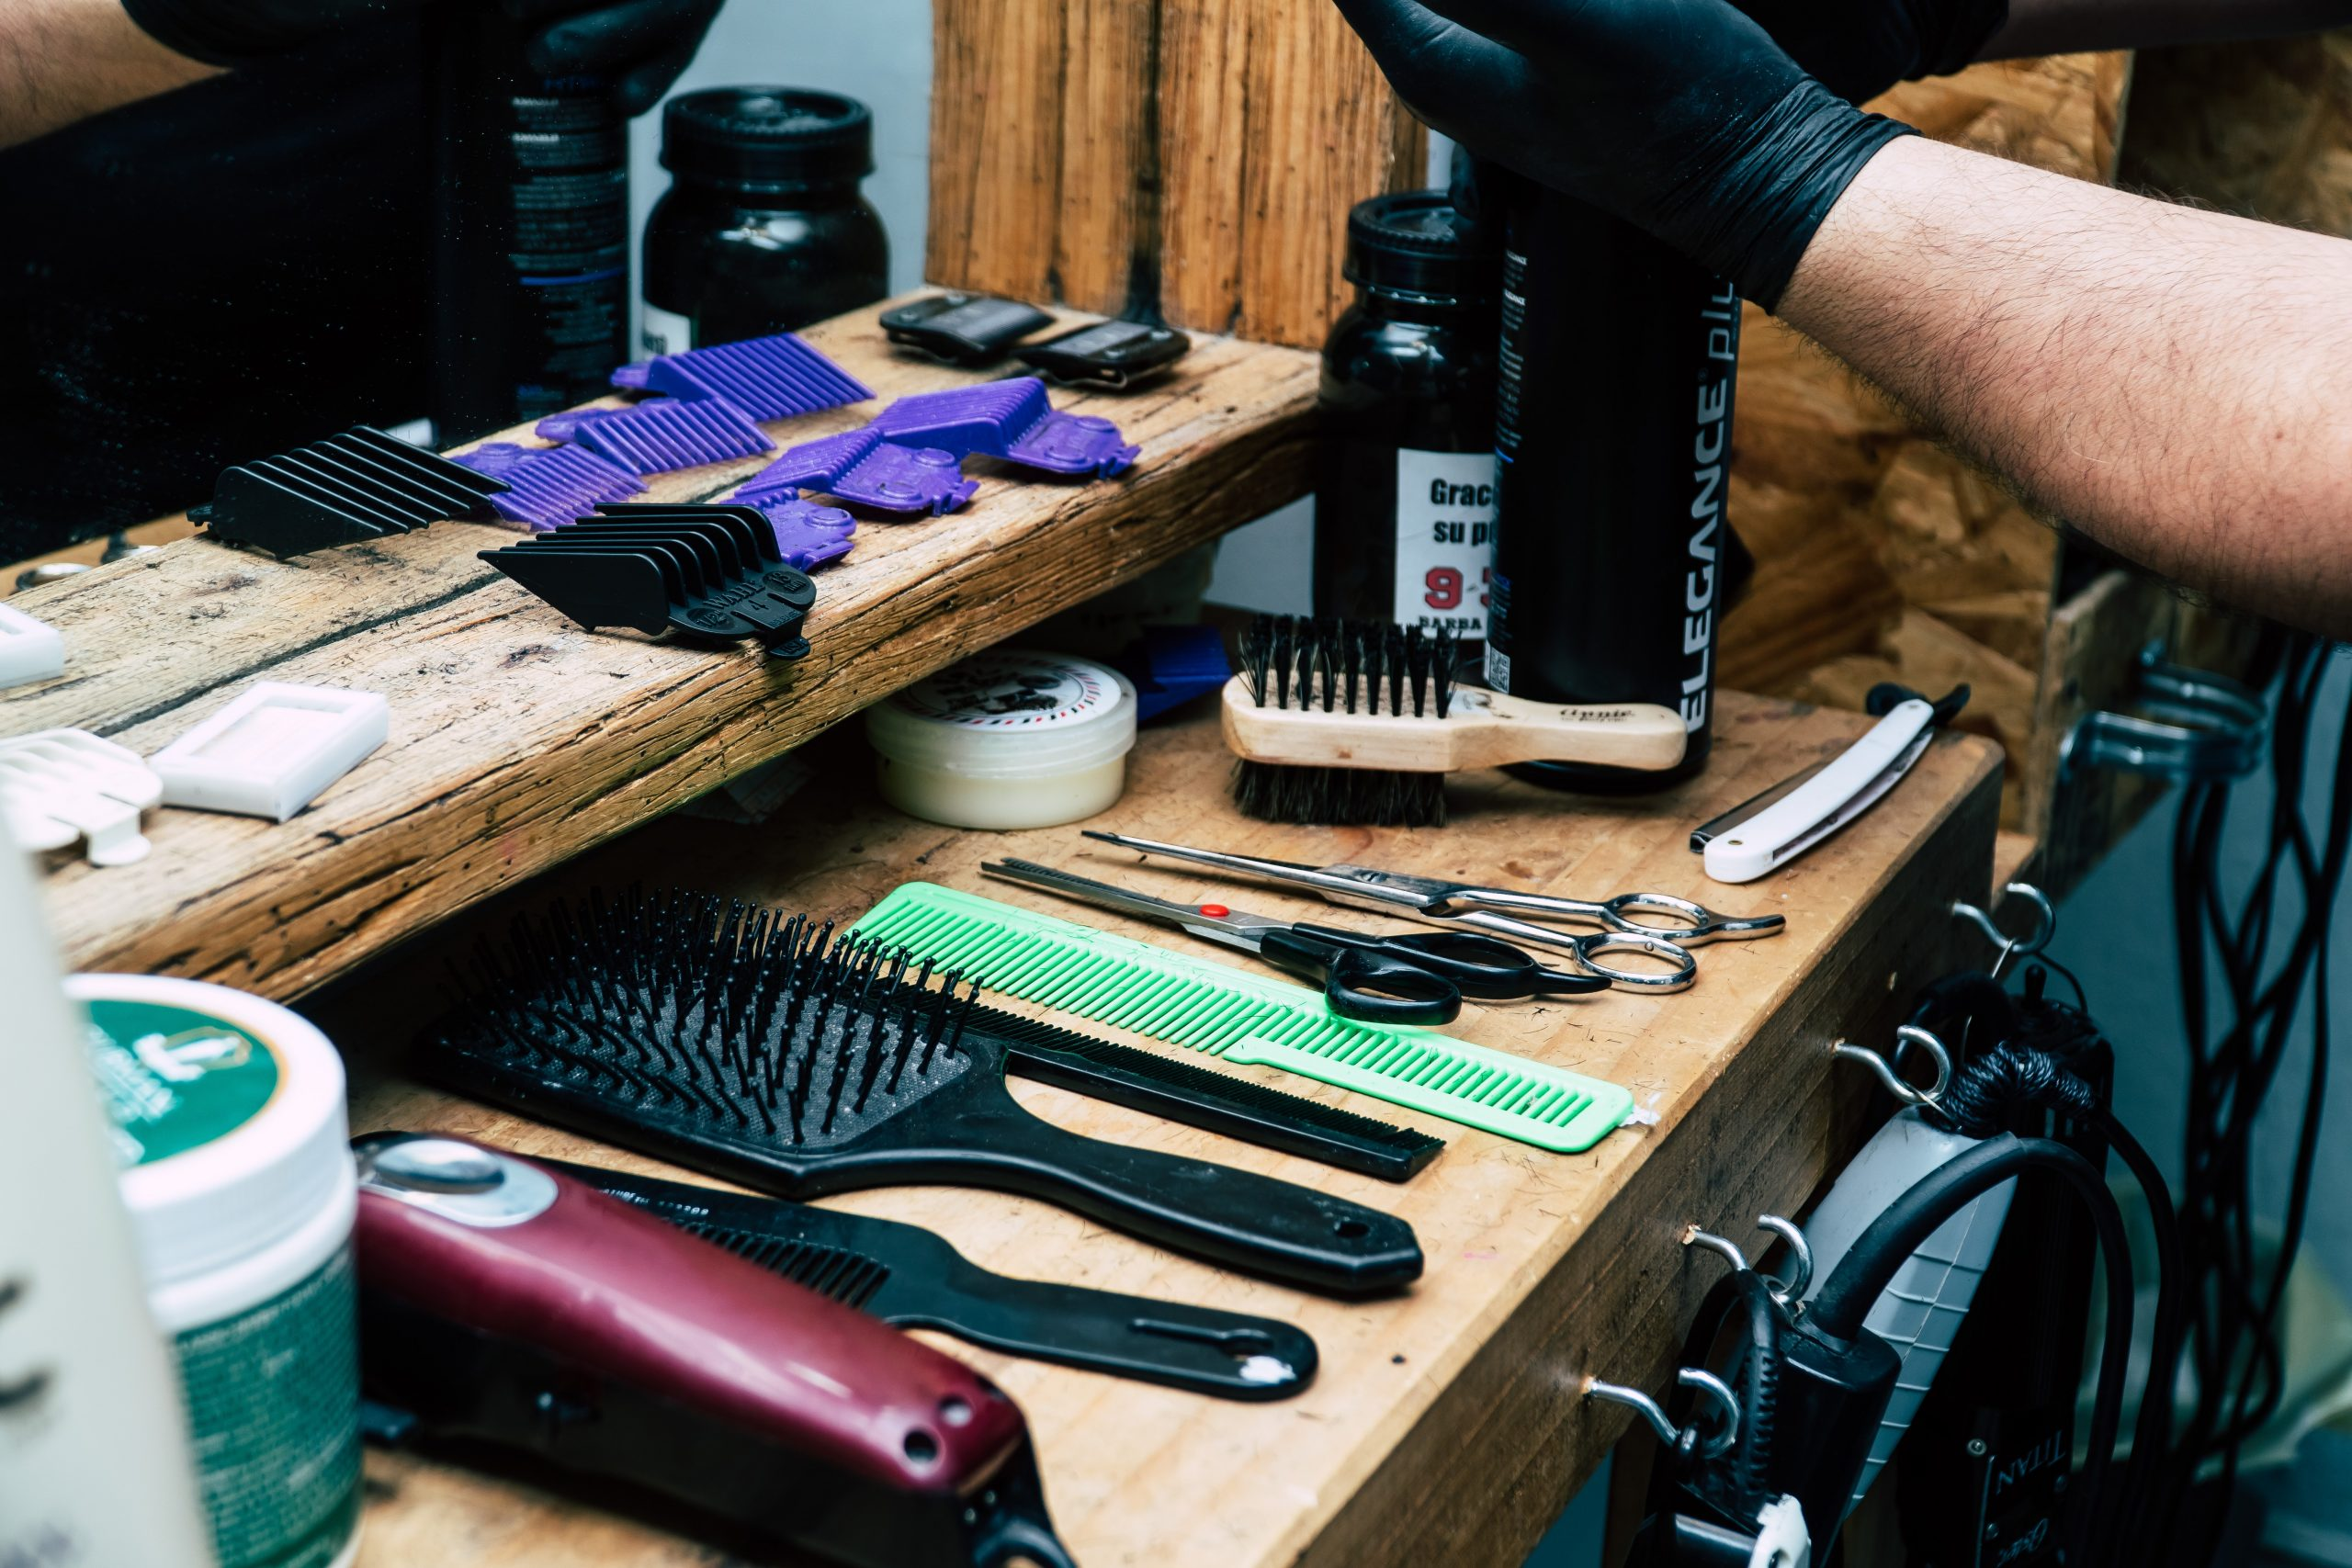 tools for hair styling and cutting laid out on a wooden dressing table